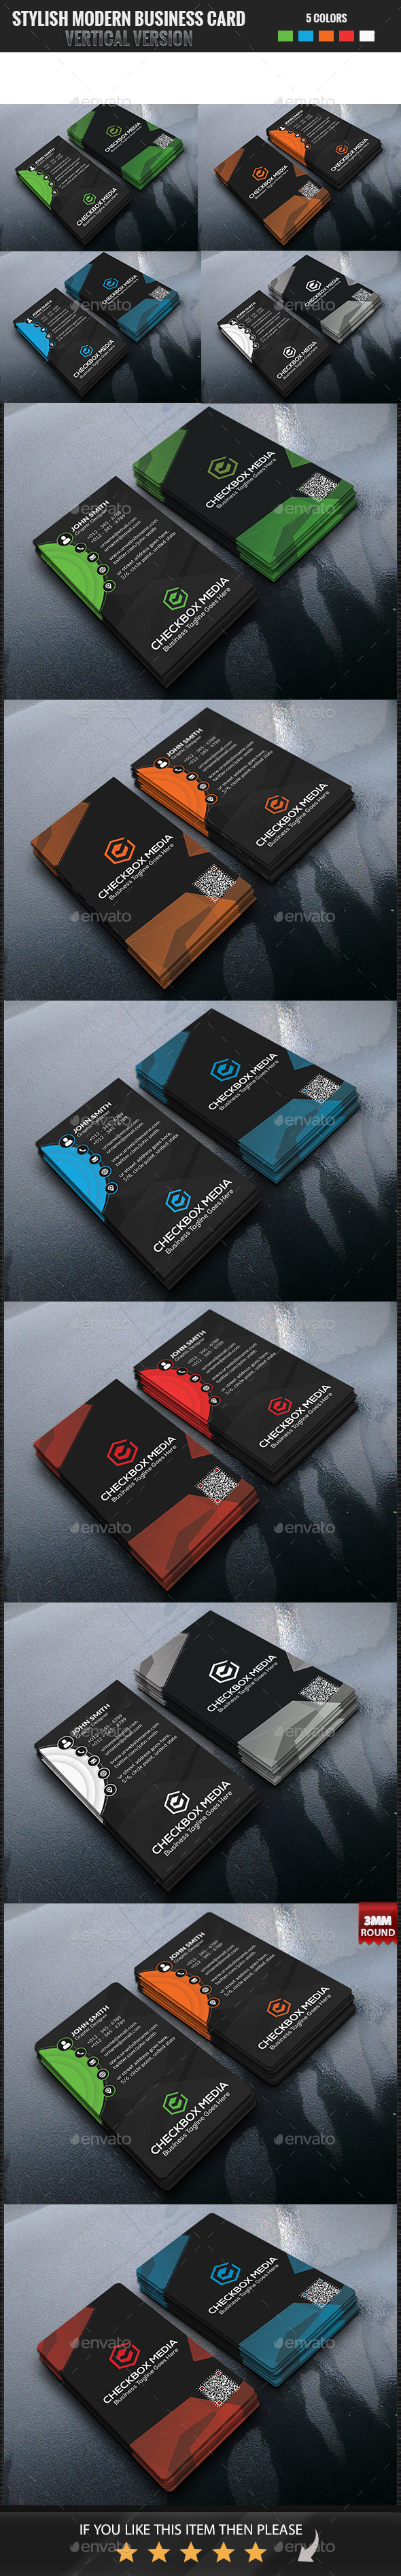 Stylish Modern Business Card Vertical Version - Business Cards Print Templates